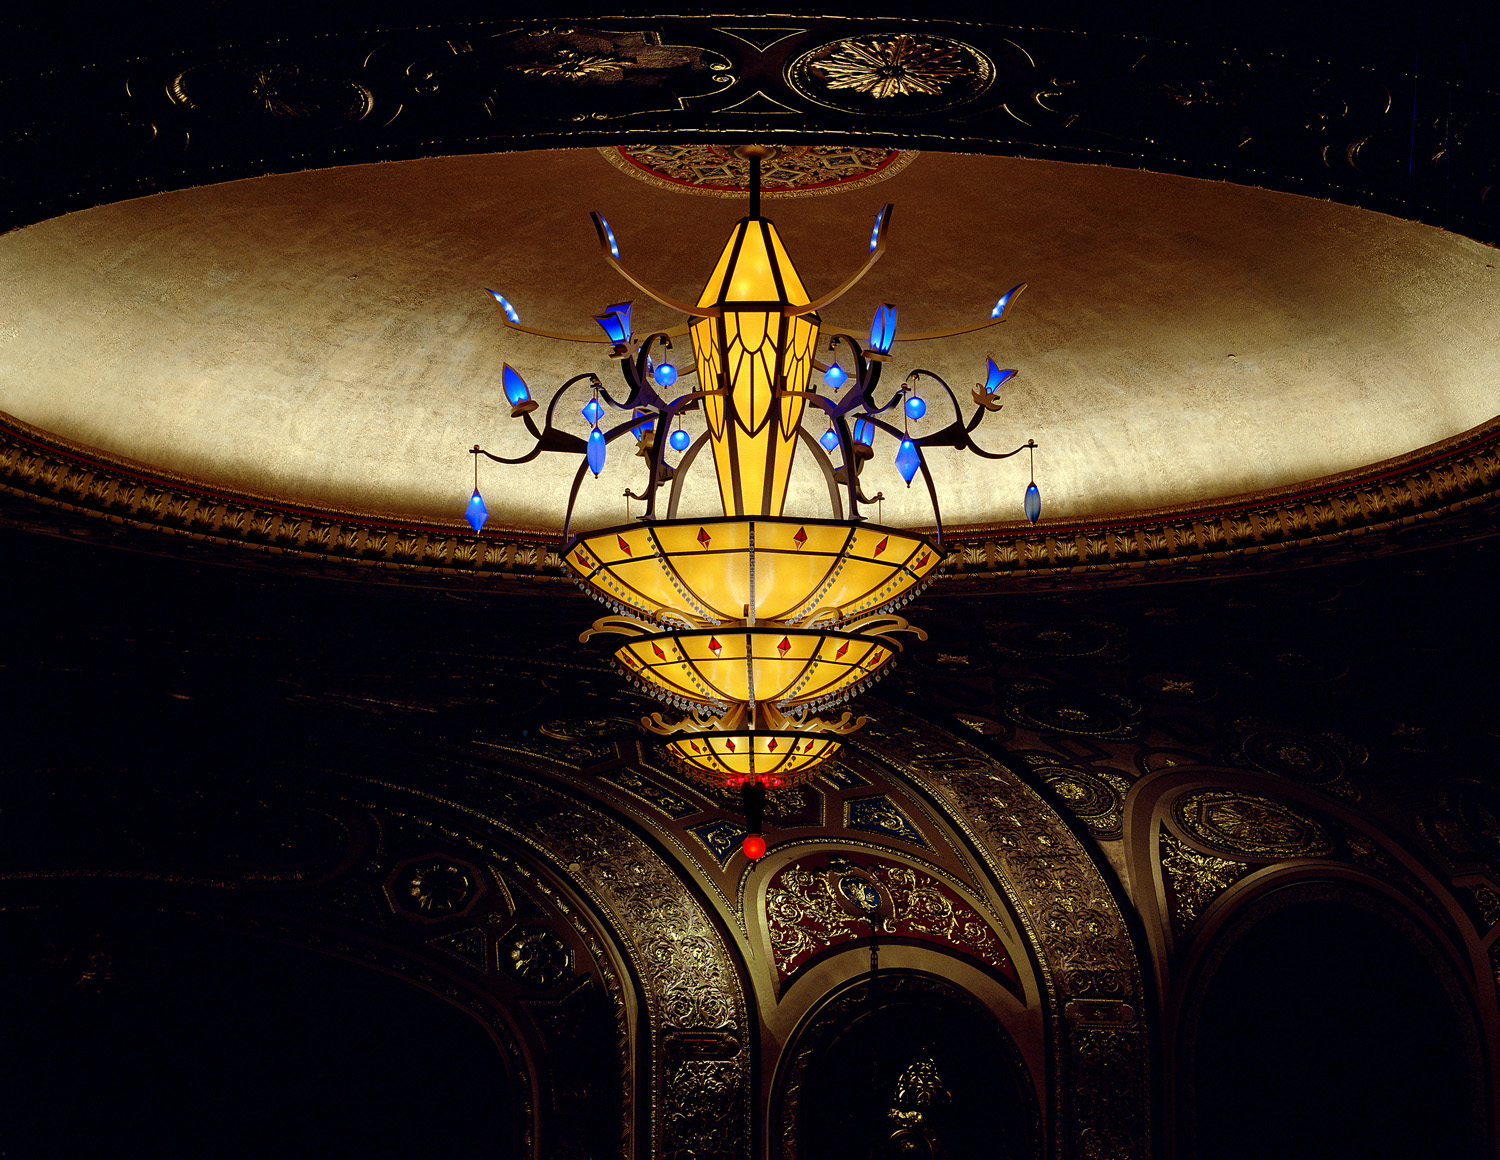 Tribute    2004. Blown glass, molded and fabricated acrylic sheet, powder coated steel, aluminum and bronze. 260 incandescent lamps, 19 high output LED clusters. 18 x 15 feet diameter, 3,950 pounds. Providence Performing Arts Center, Providence, RI